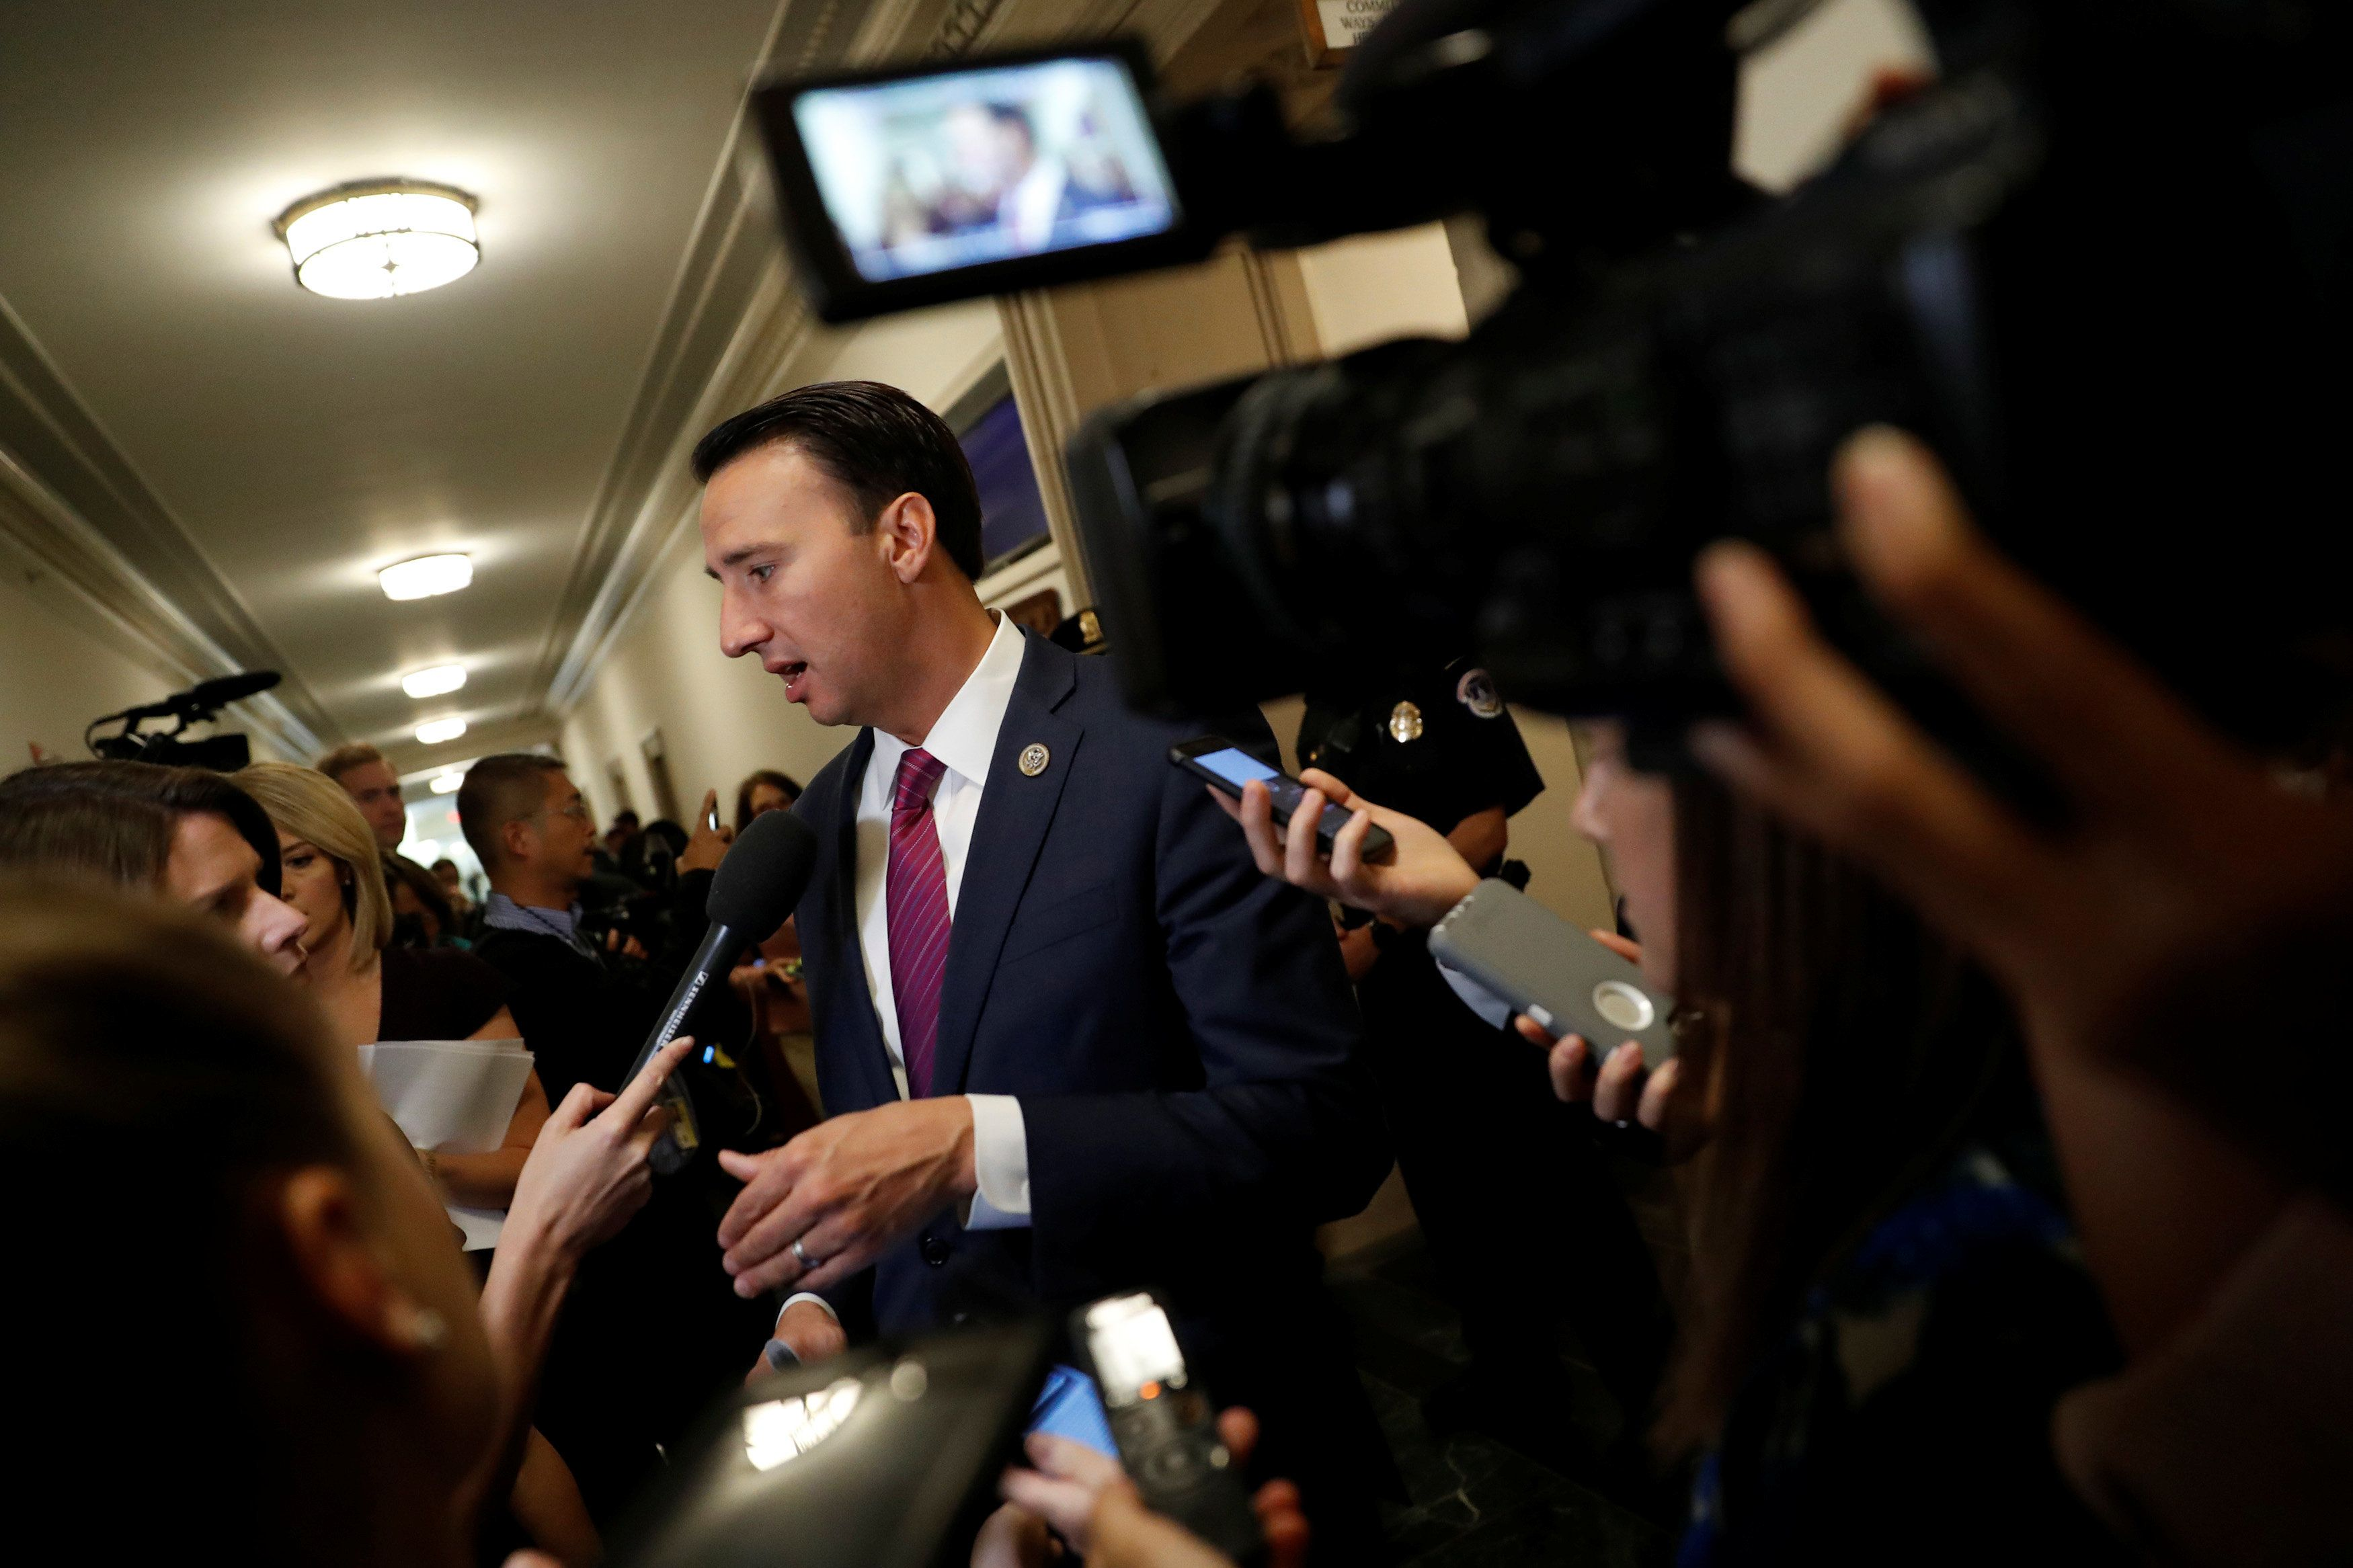 Rep. Ryan Costello (R-PA) speaks with the media following a meeting of the Republican conference ahead of the release of their tax reform plan on Capitol Hill in Washington, U.S., November 2, 2017. REUTERS/Aaron P. Bernstein